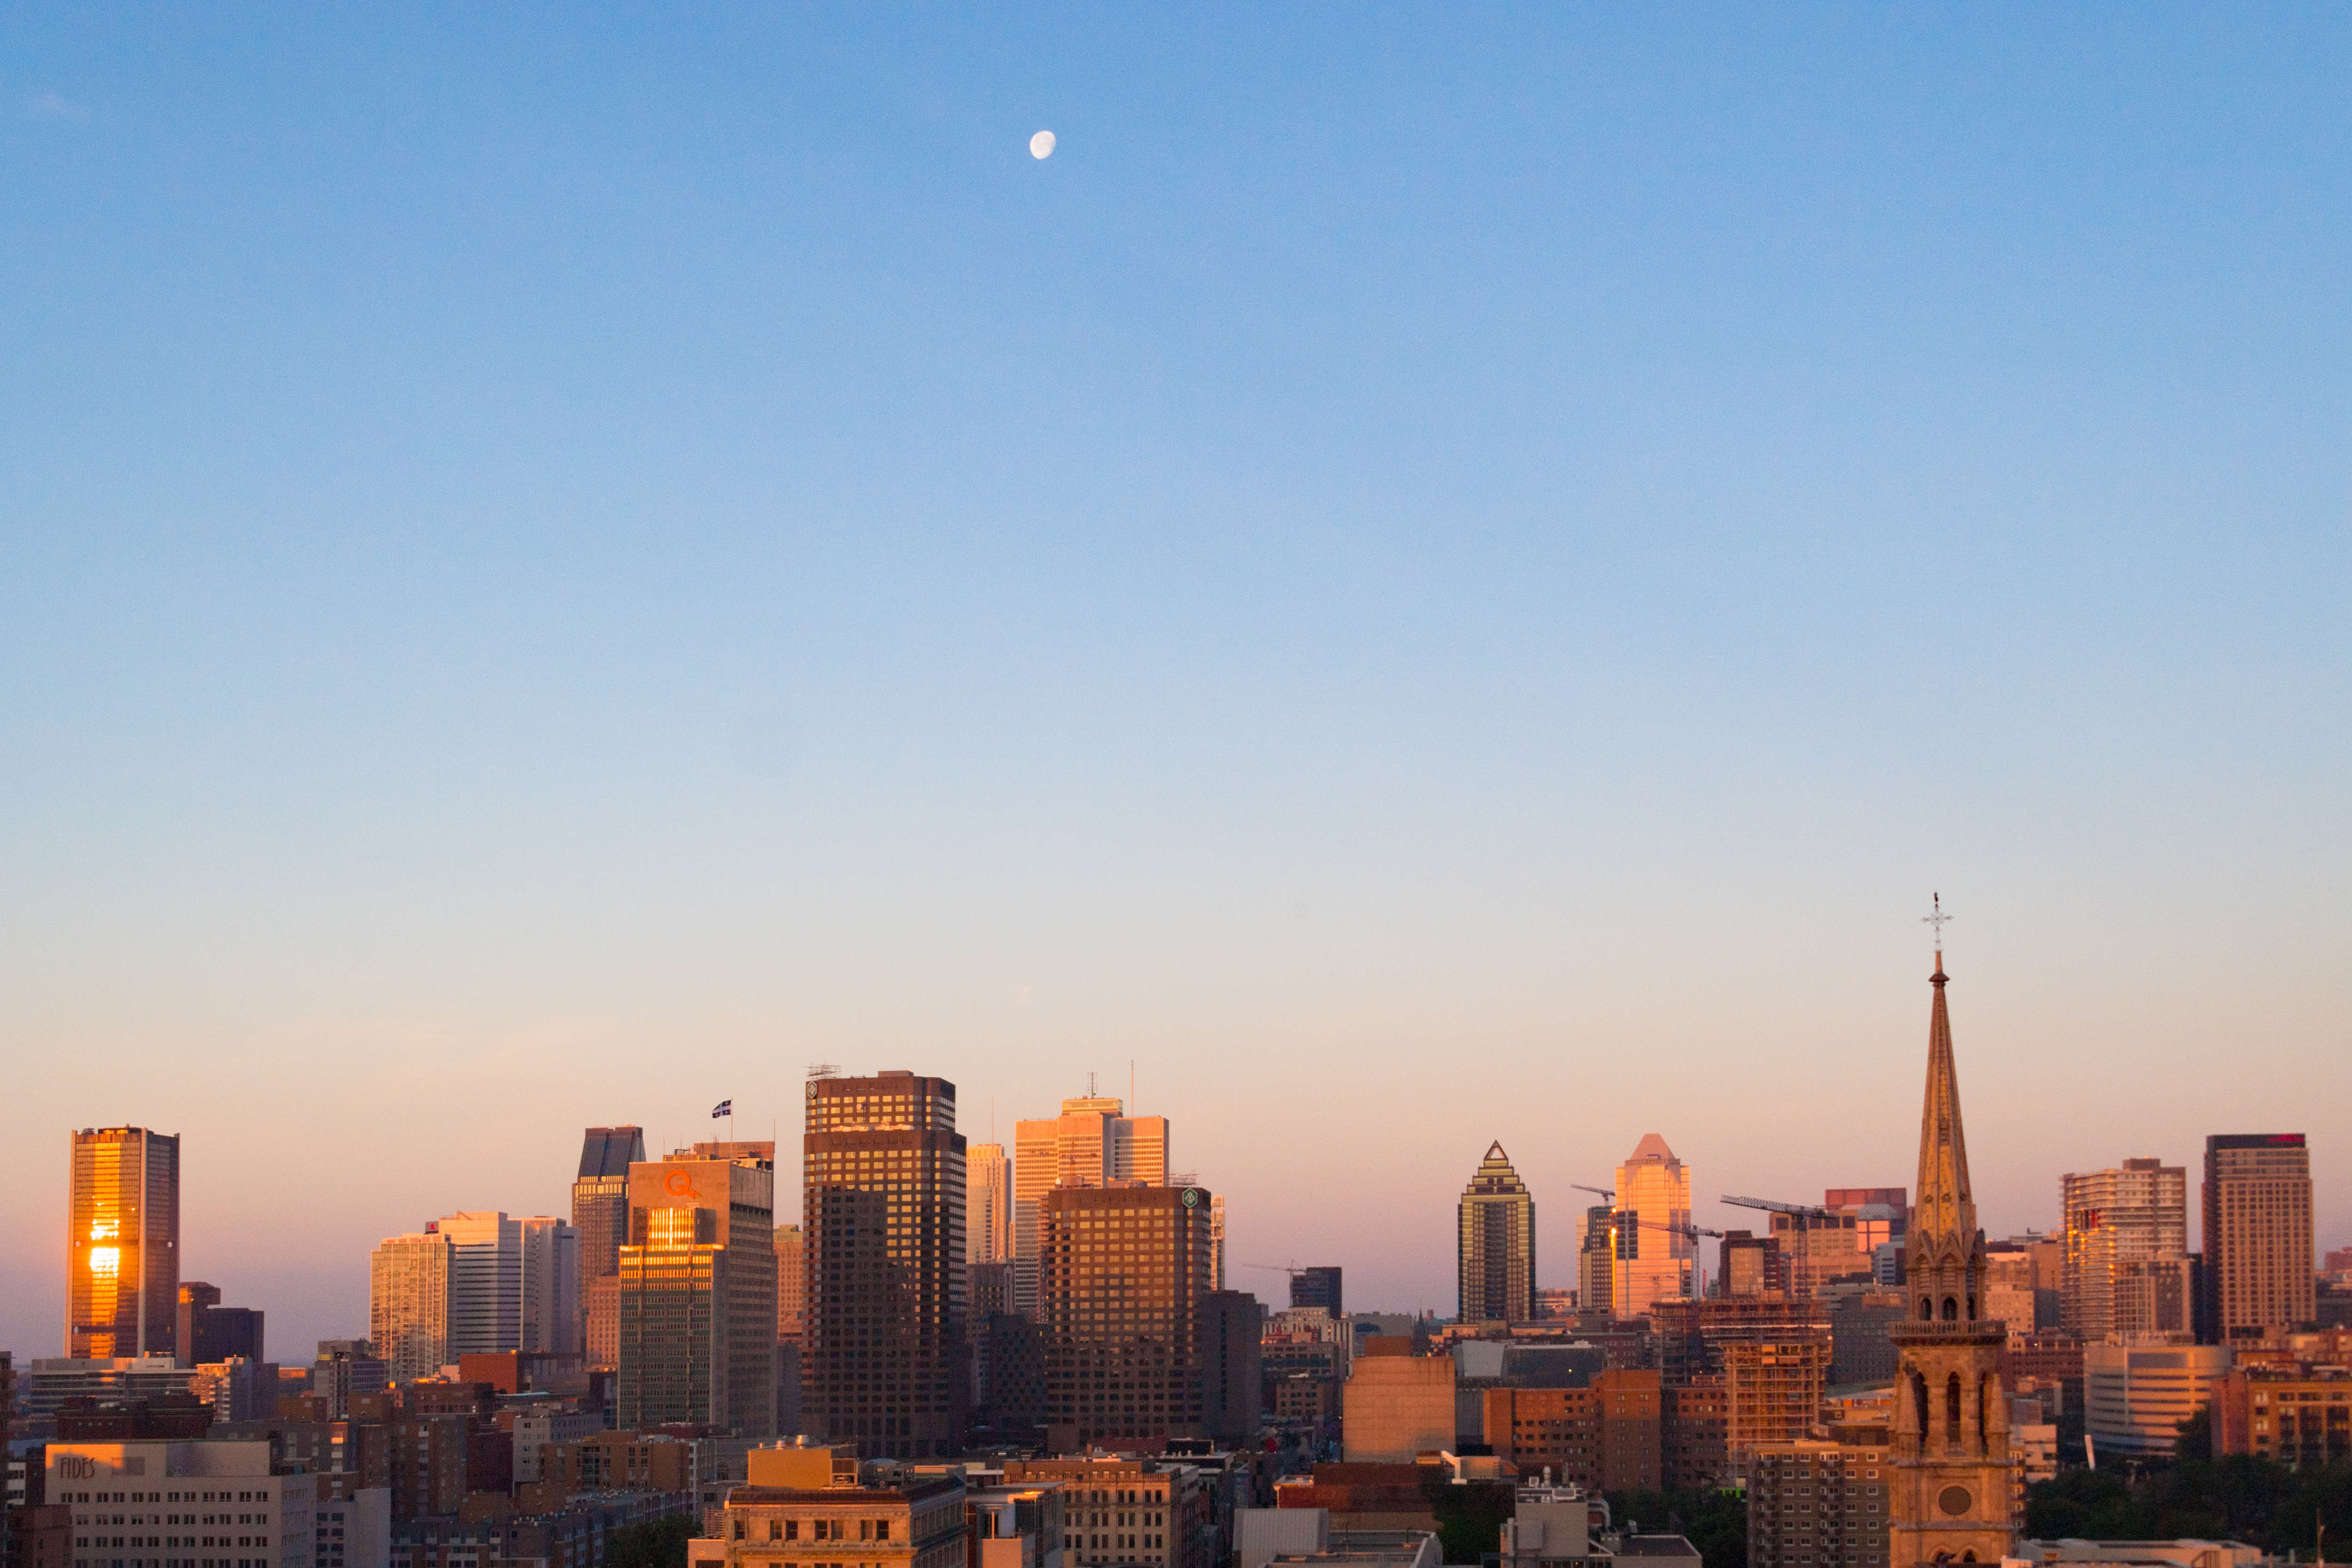 City skyline with moon in the sky. The famous Canadian city